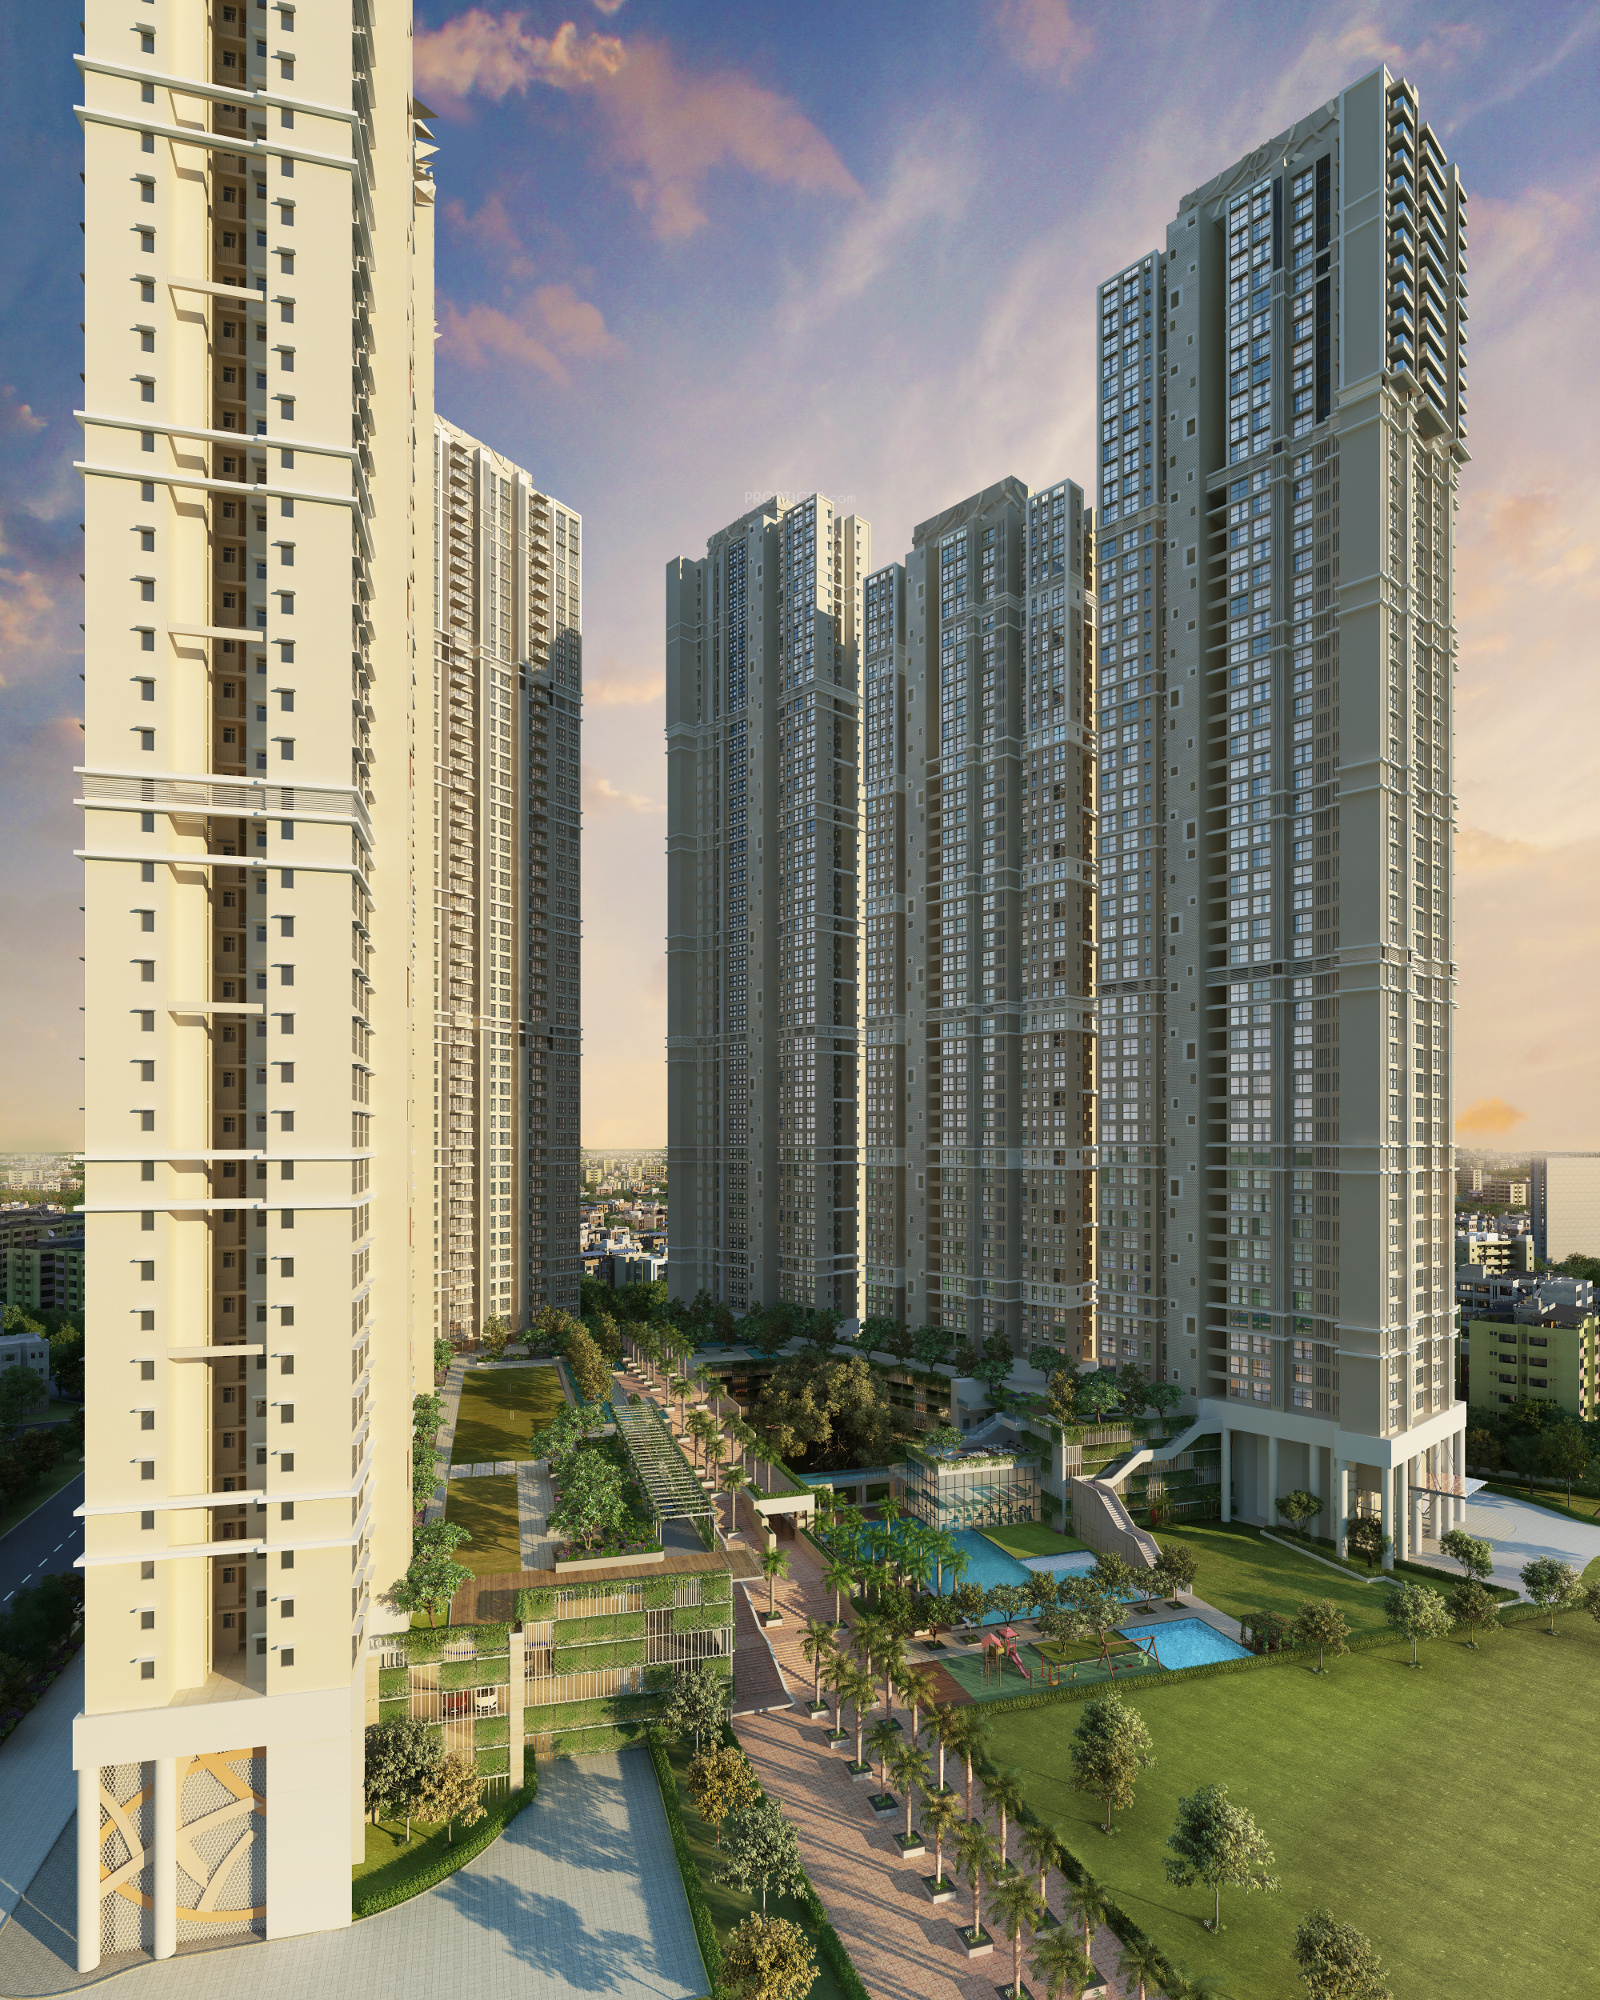 753 sq ft 2 BHK 2T Apartment for Sale in Runwal Realty